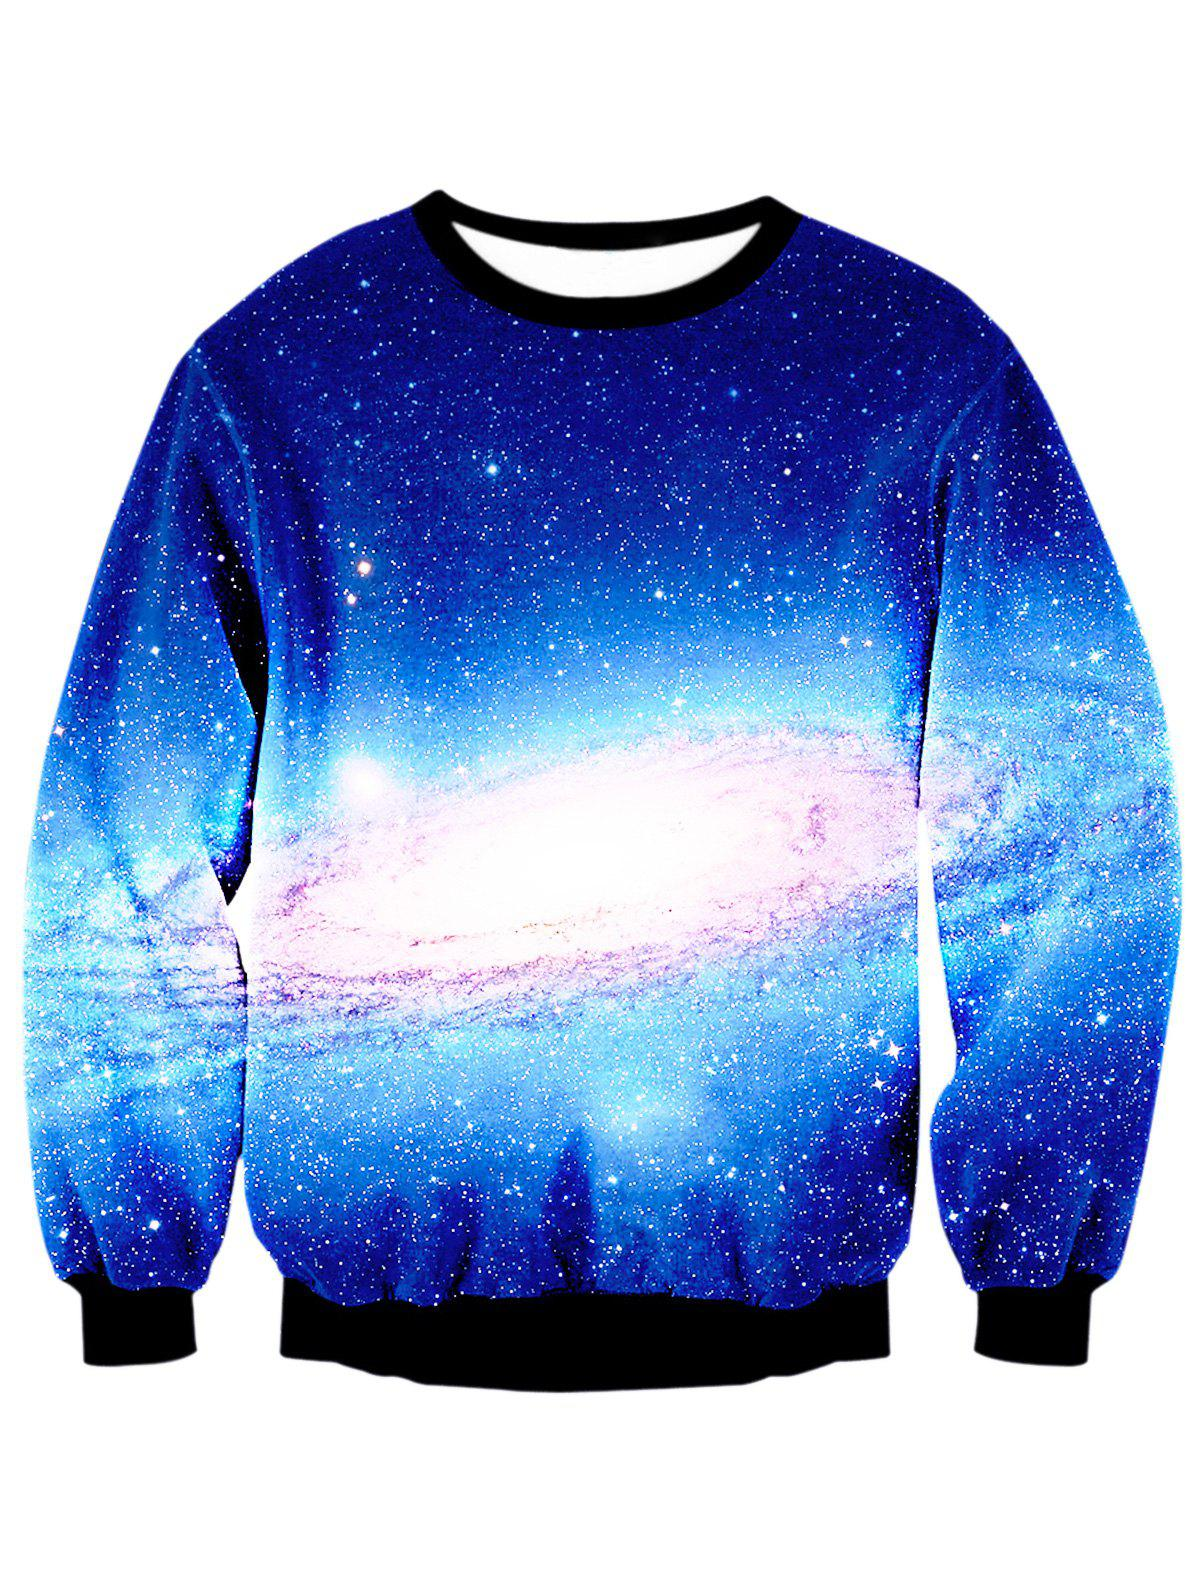 Sweat-shirt à imprimé numérique Galaxy - multicolore L